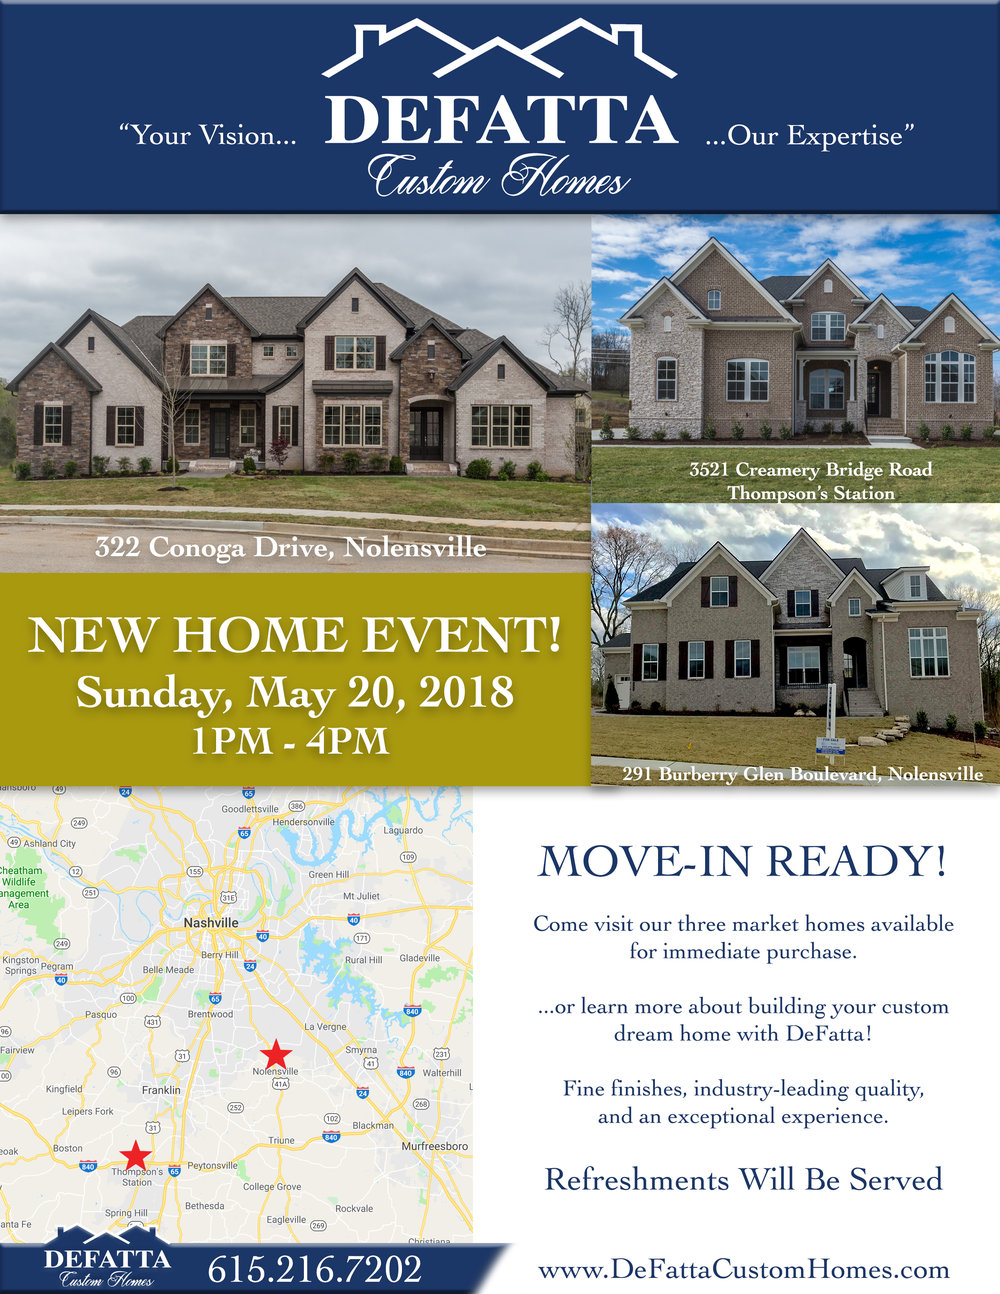 5-15-2018 New Home Event Flyer.jpg